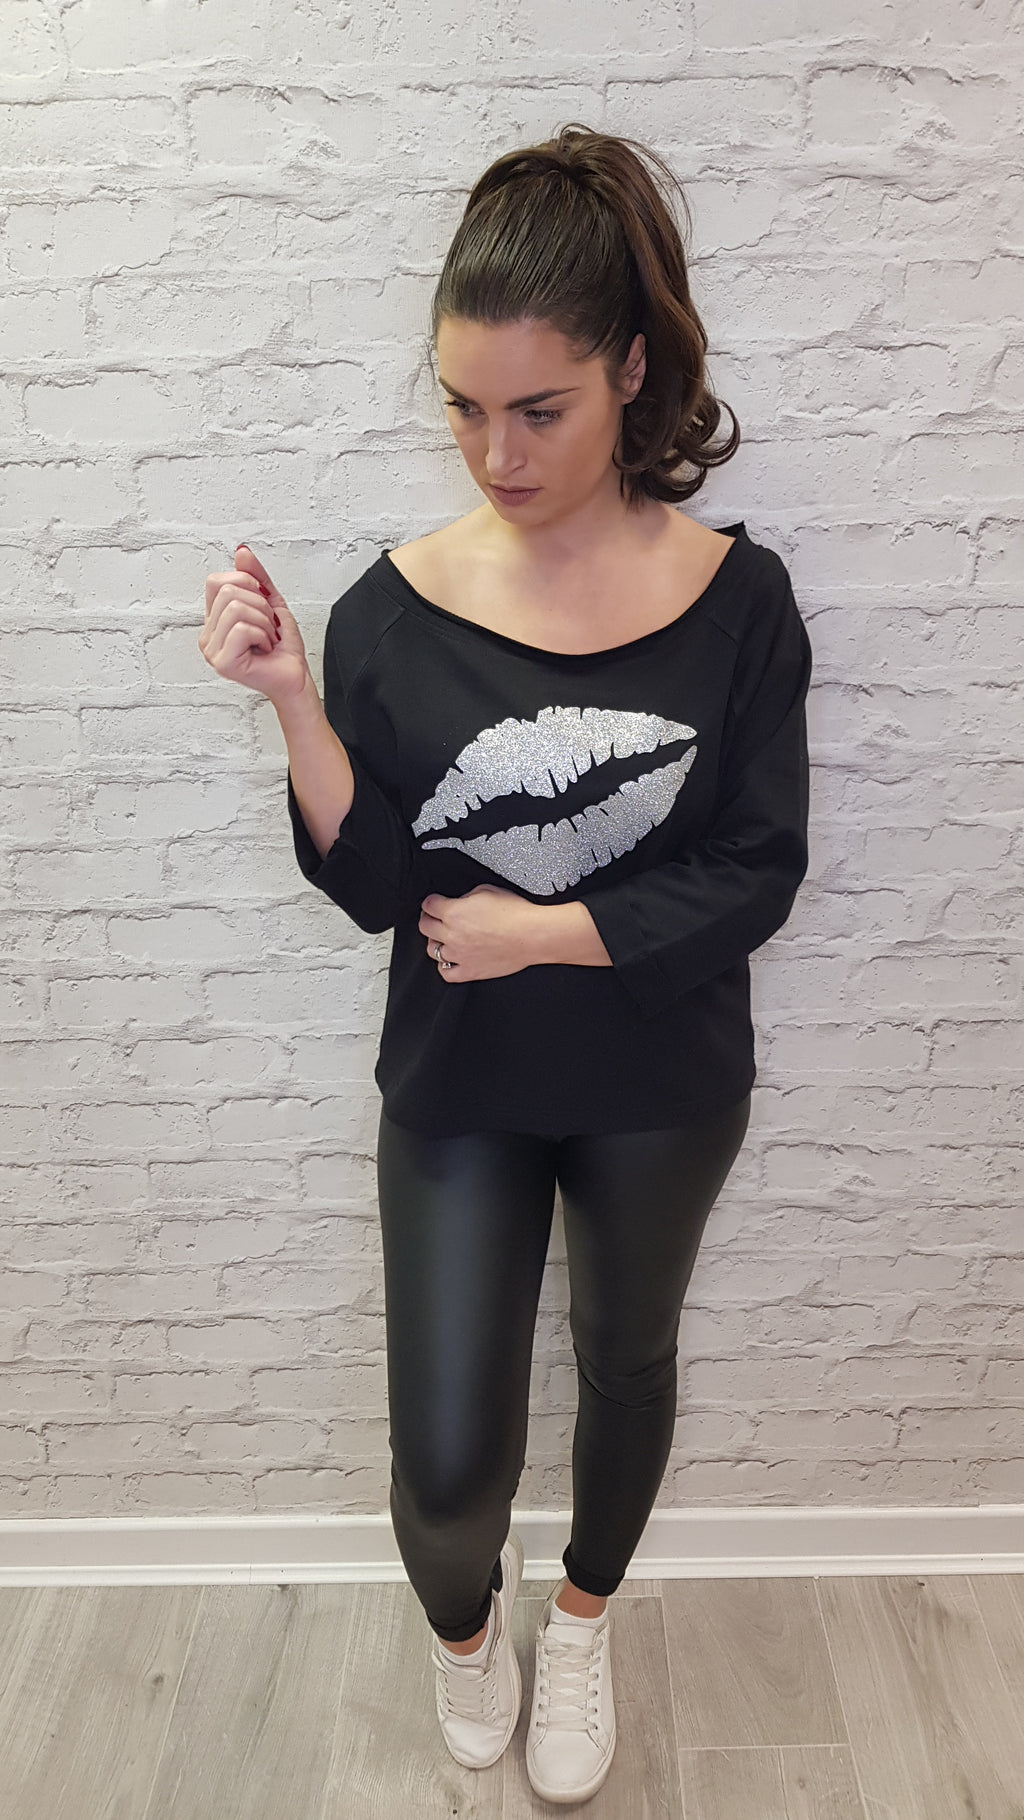 Gem Lips Scoop Neck Sweatshirt Silver Lips - Available in Black & White Sweatshirts